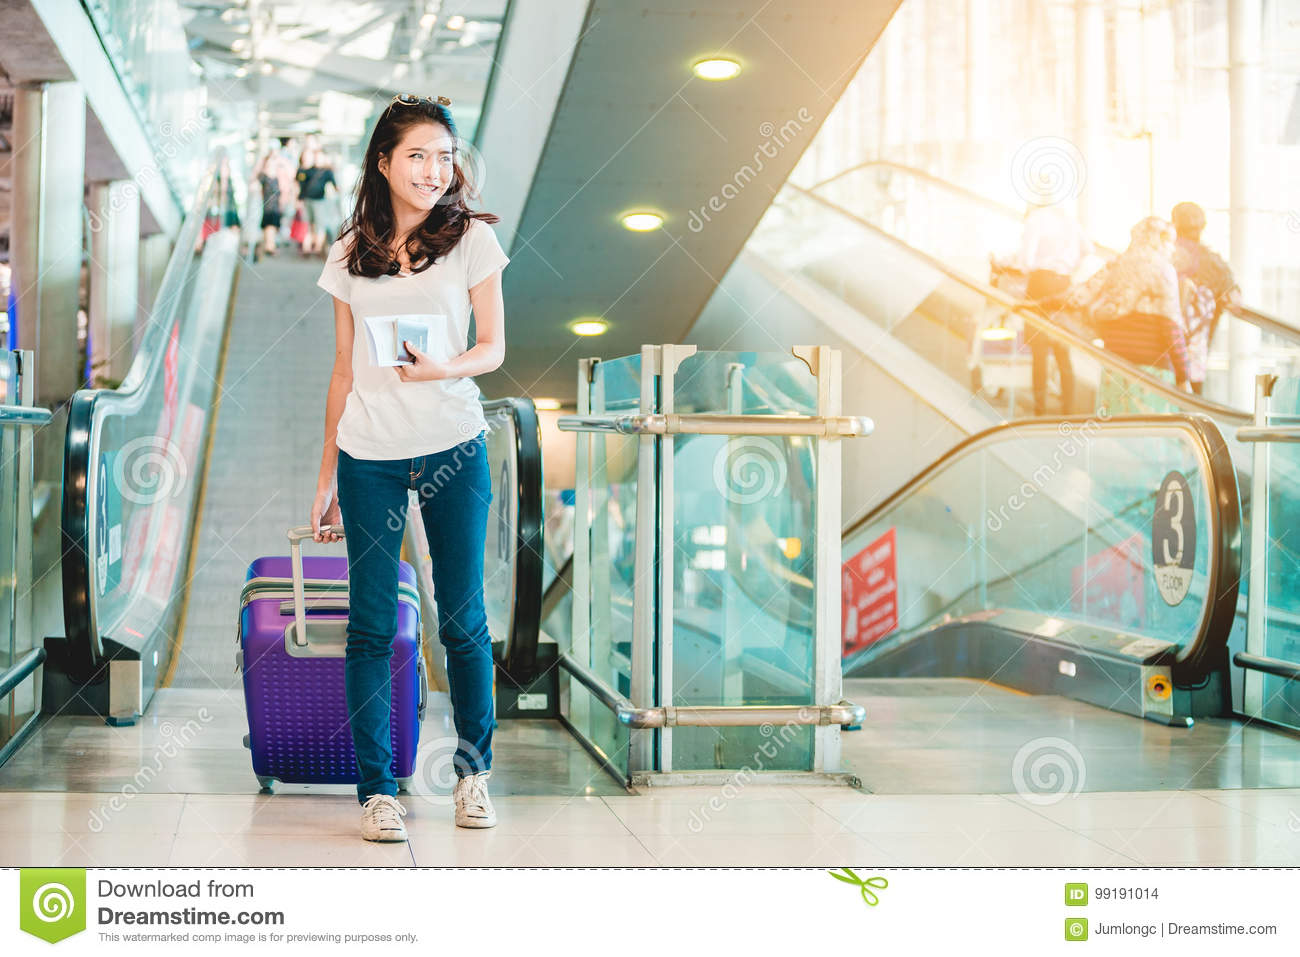 Girl in airport.